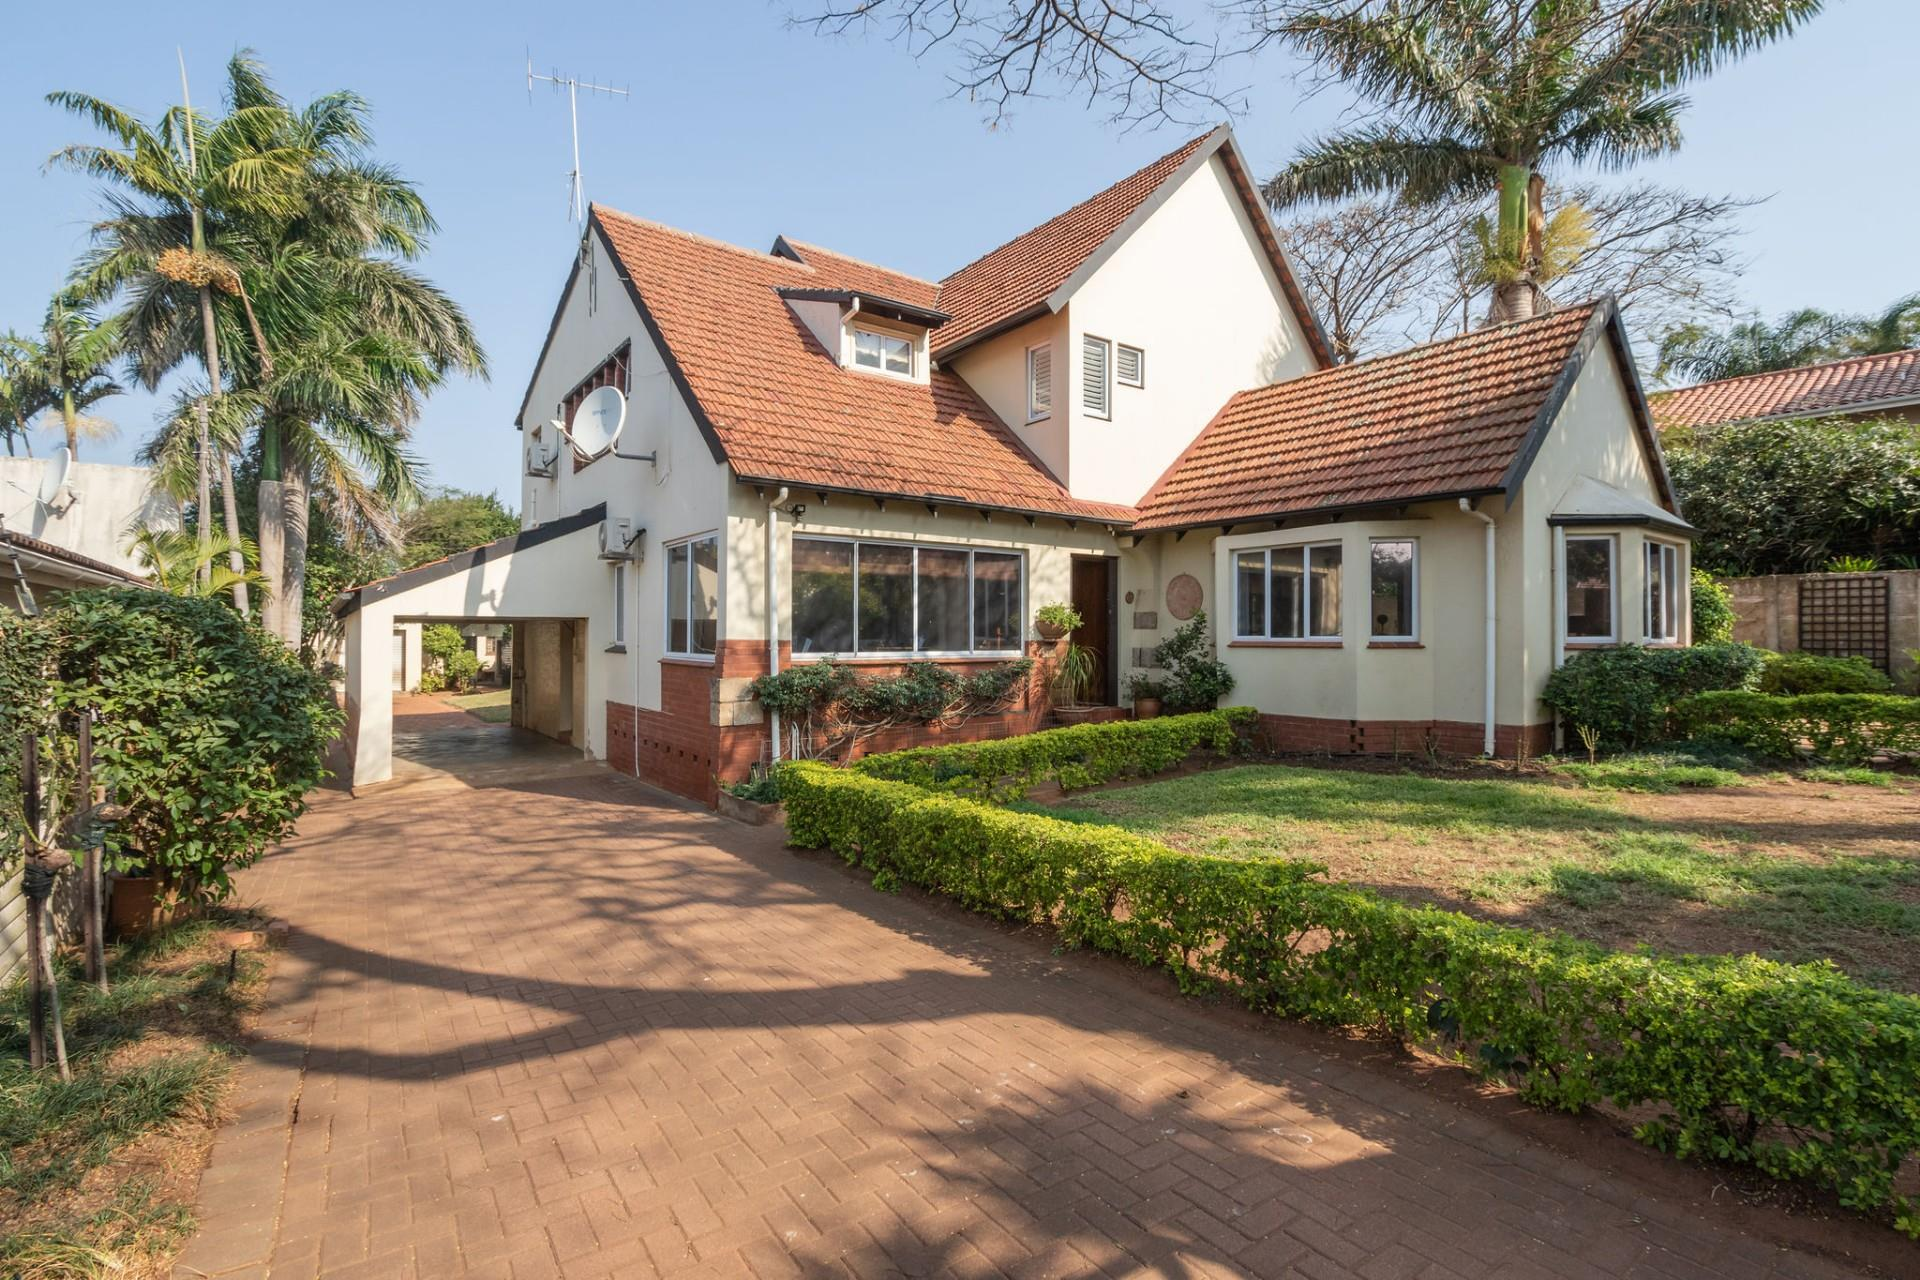 5 Bedroom House In Durban North Re Max